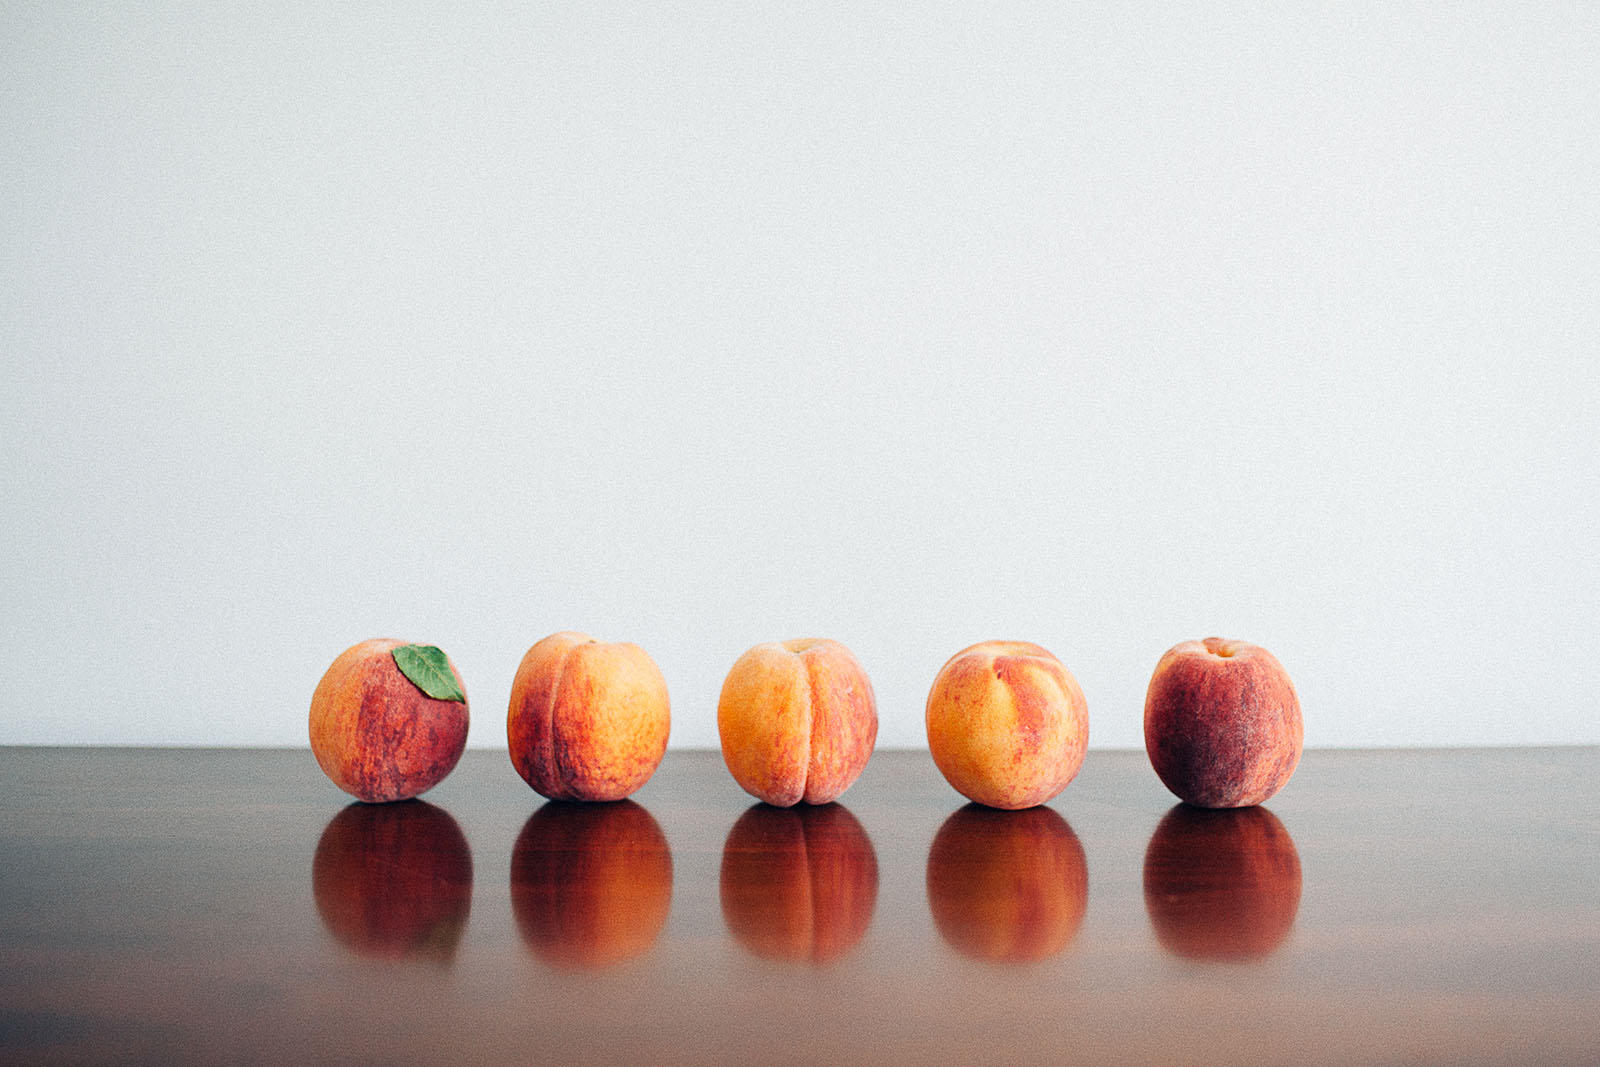 picture of a row of peaches by Sarah Lalone